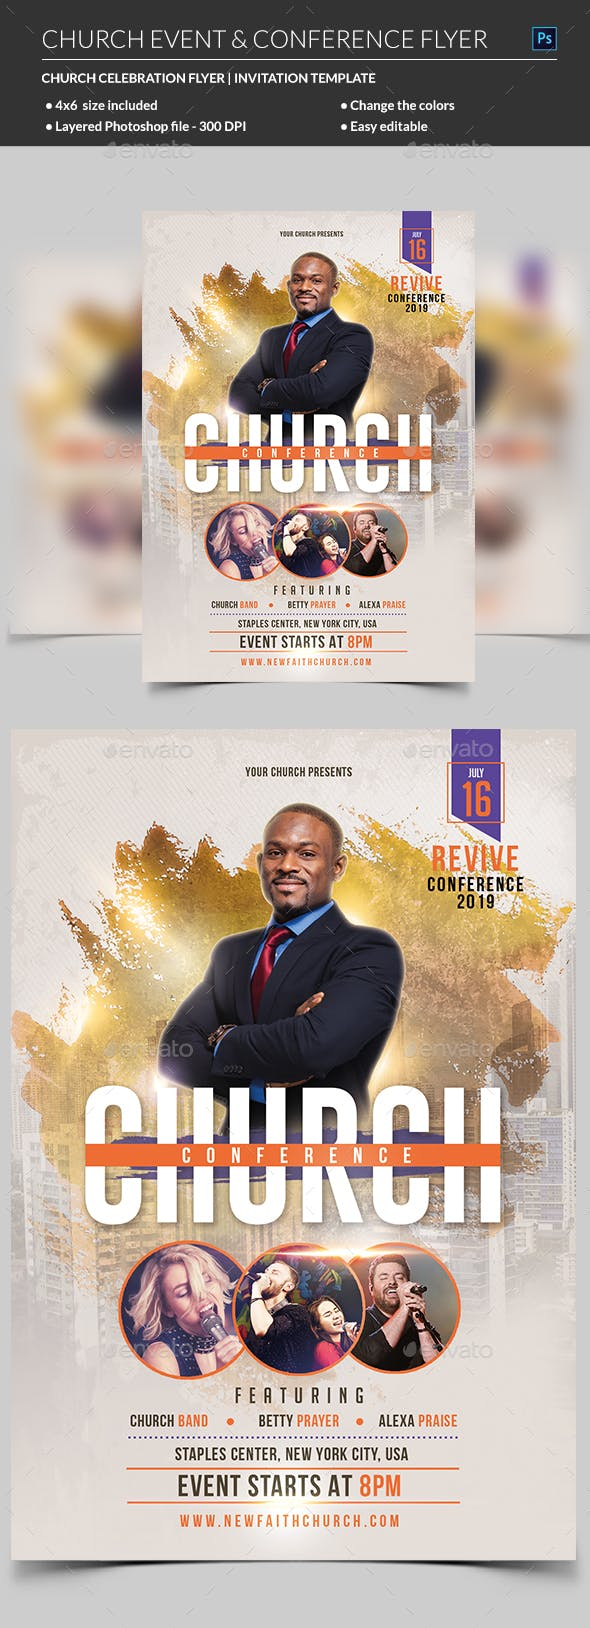 church event or conference flyer template by madridnyc graphicriver